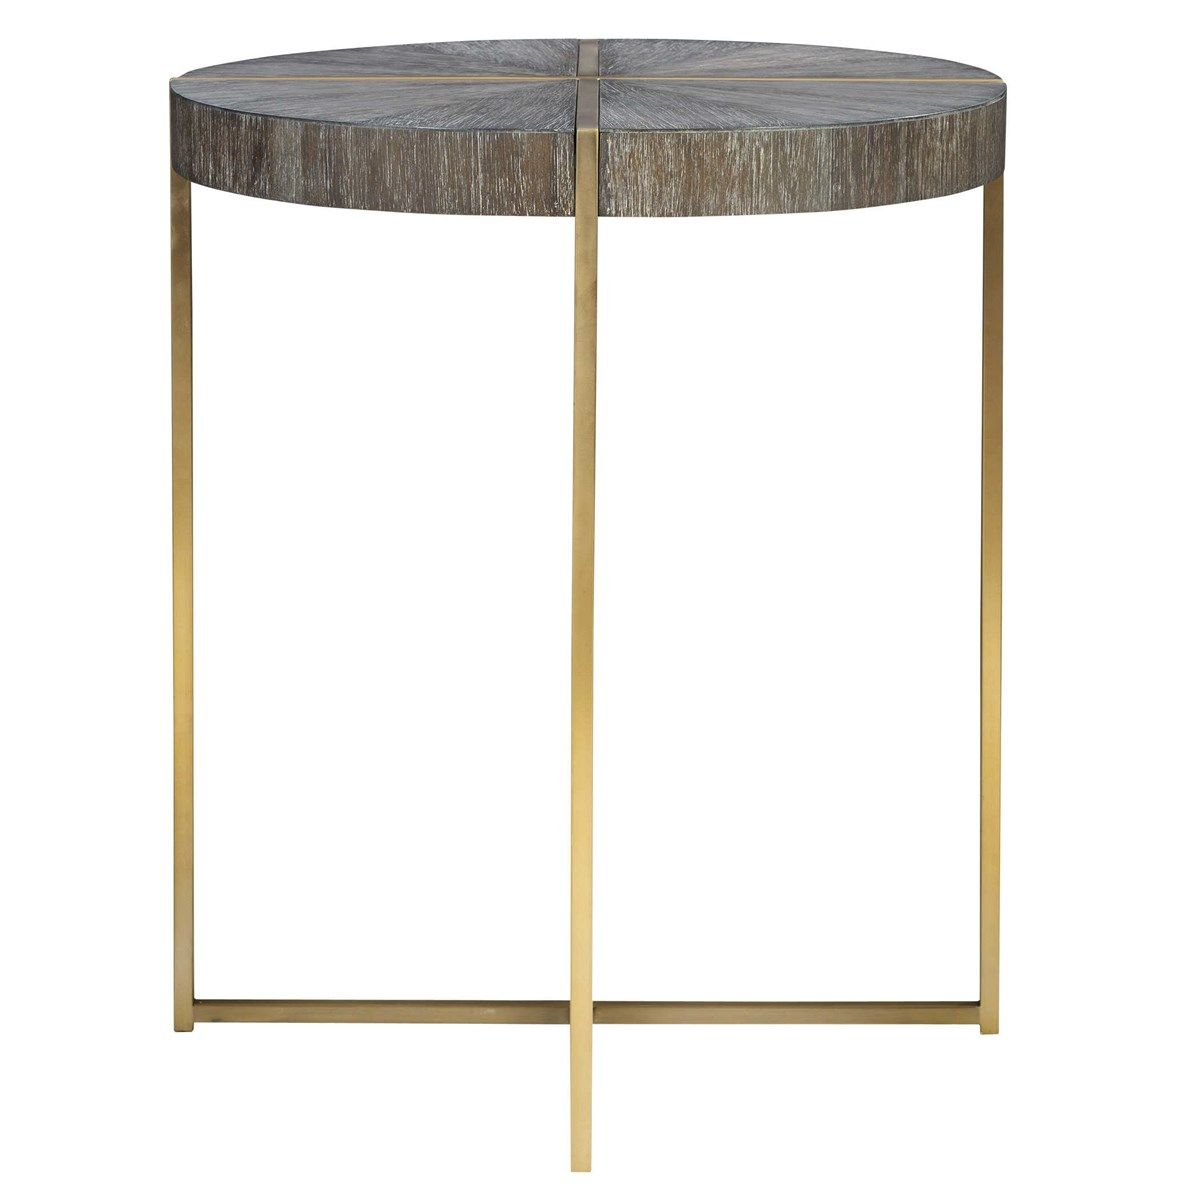 Uttermost Taja Round Accent Table Round Accent Table Accent